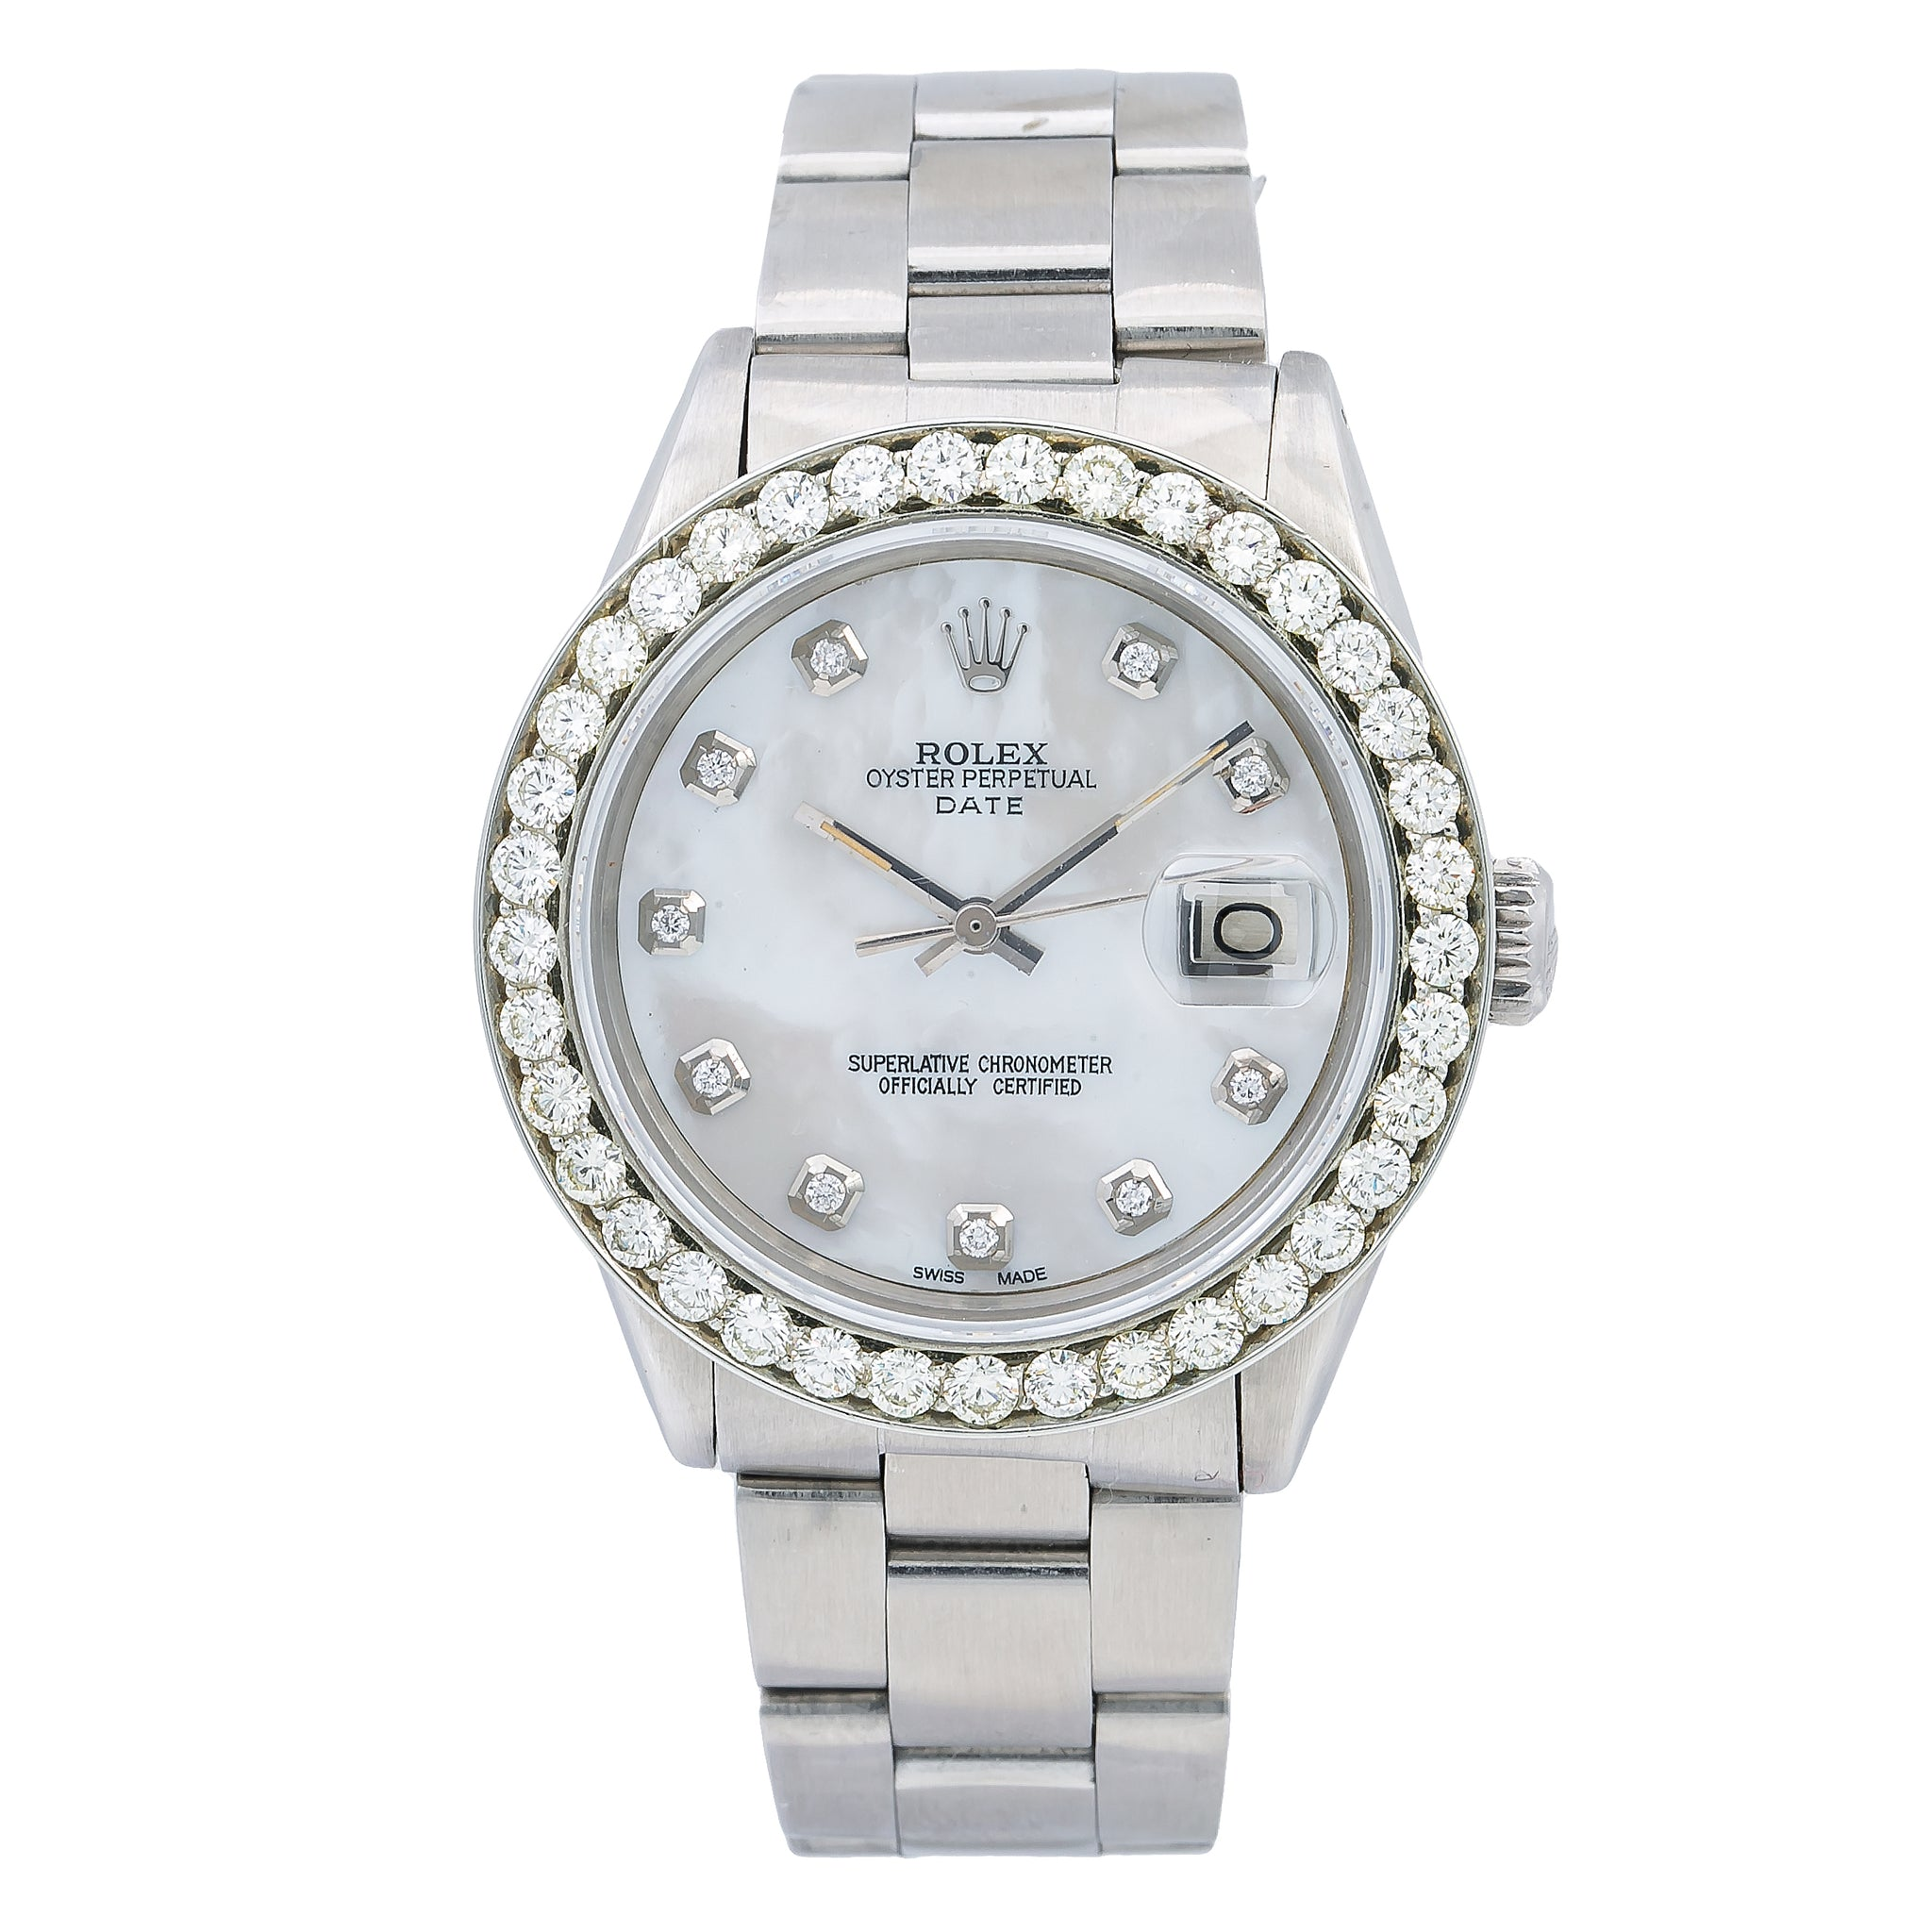 Rolex Oyster Perpetual Date 1500 34MM Silver Diamond Dial With 1.15 CT Diamonds